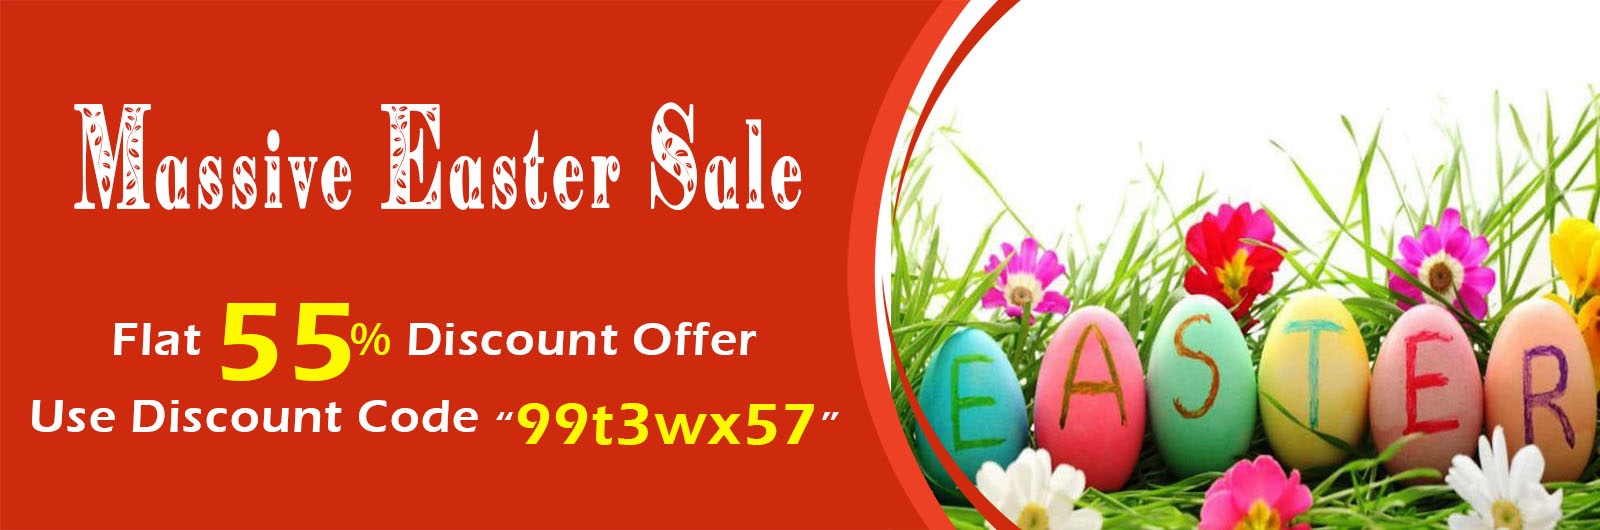 Happy Easter Flat 55% Discount Offer